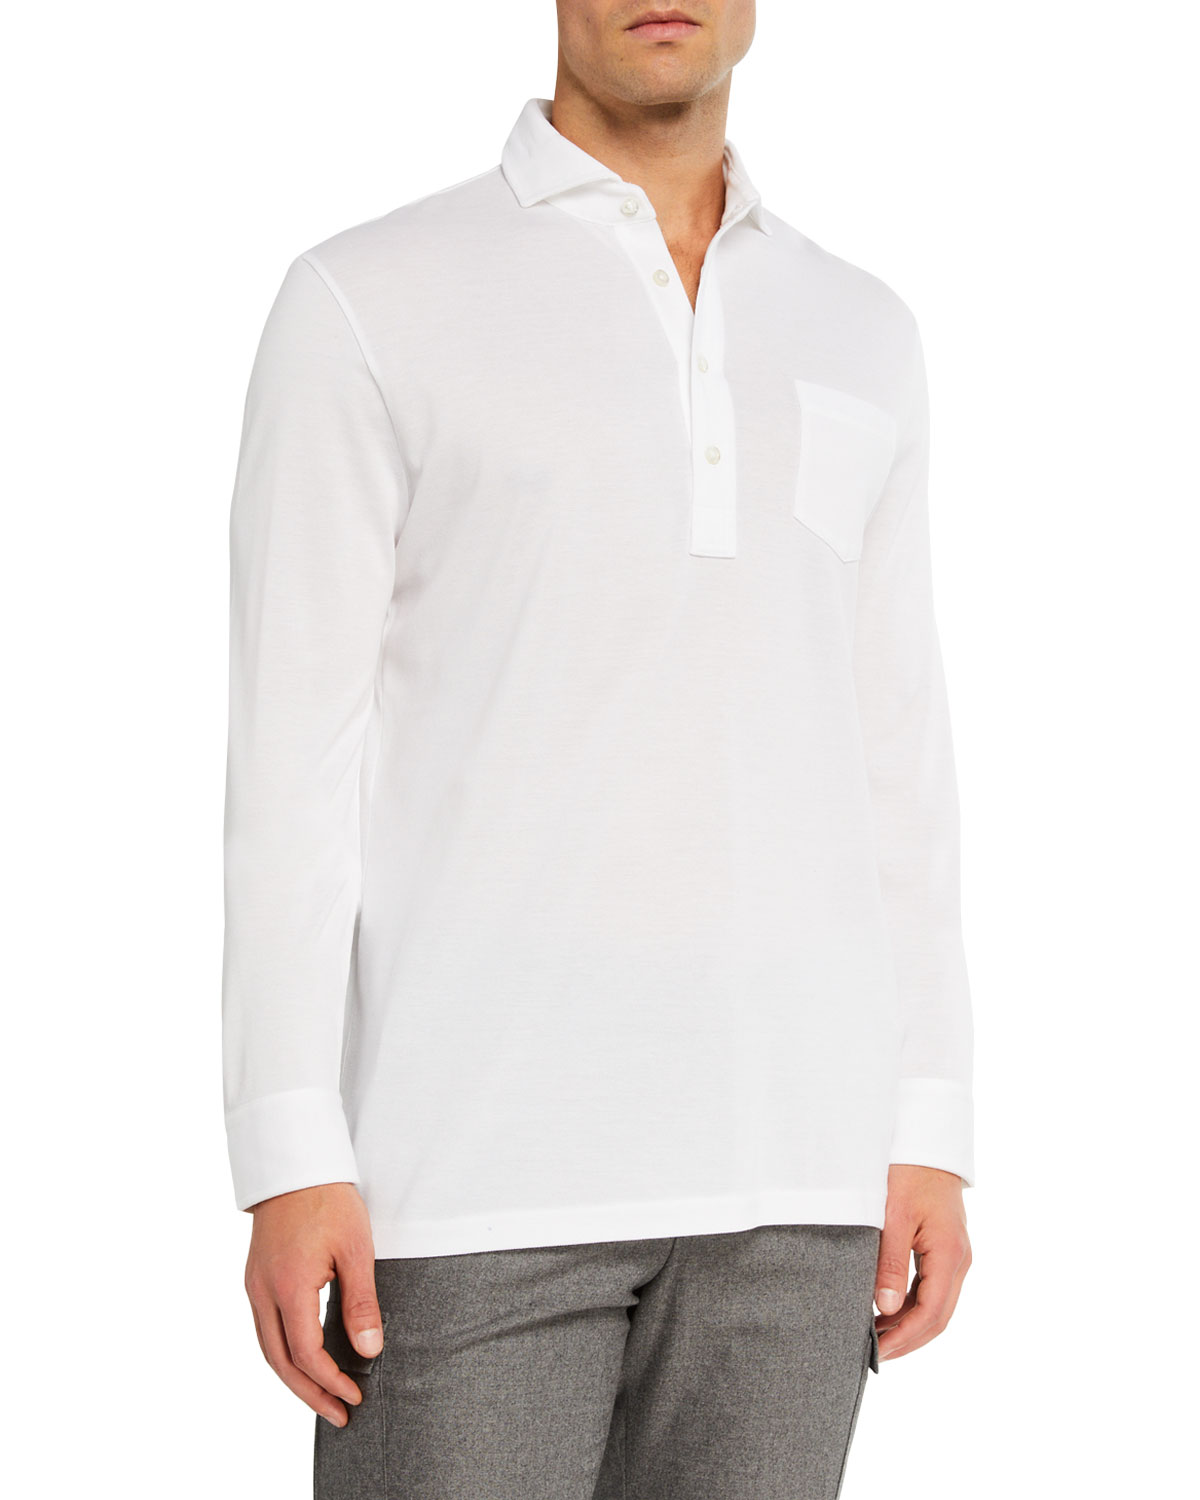 Ralph Lauren T-shirts MEN'S WASHED LONG-SLEEVE POCKET POLO SHIRT, WHITE